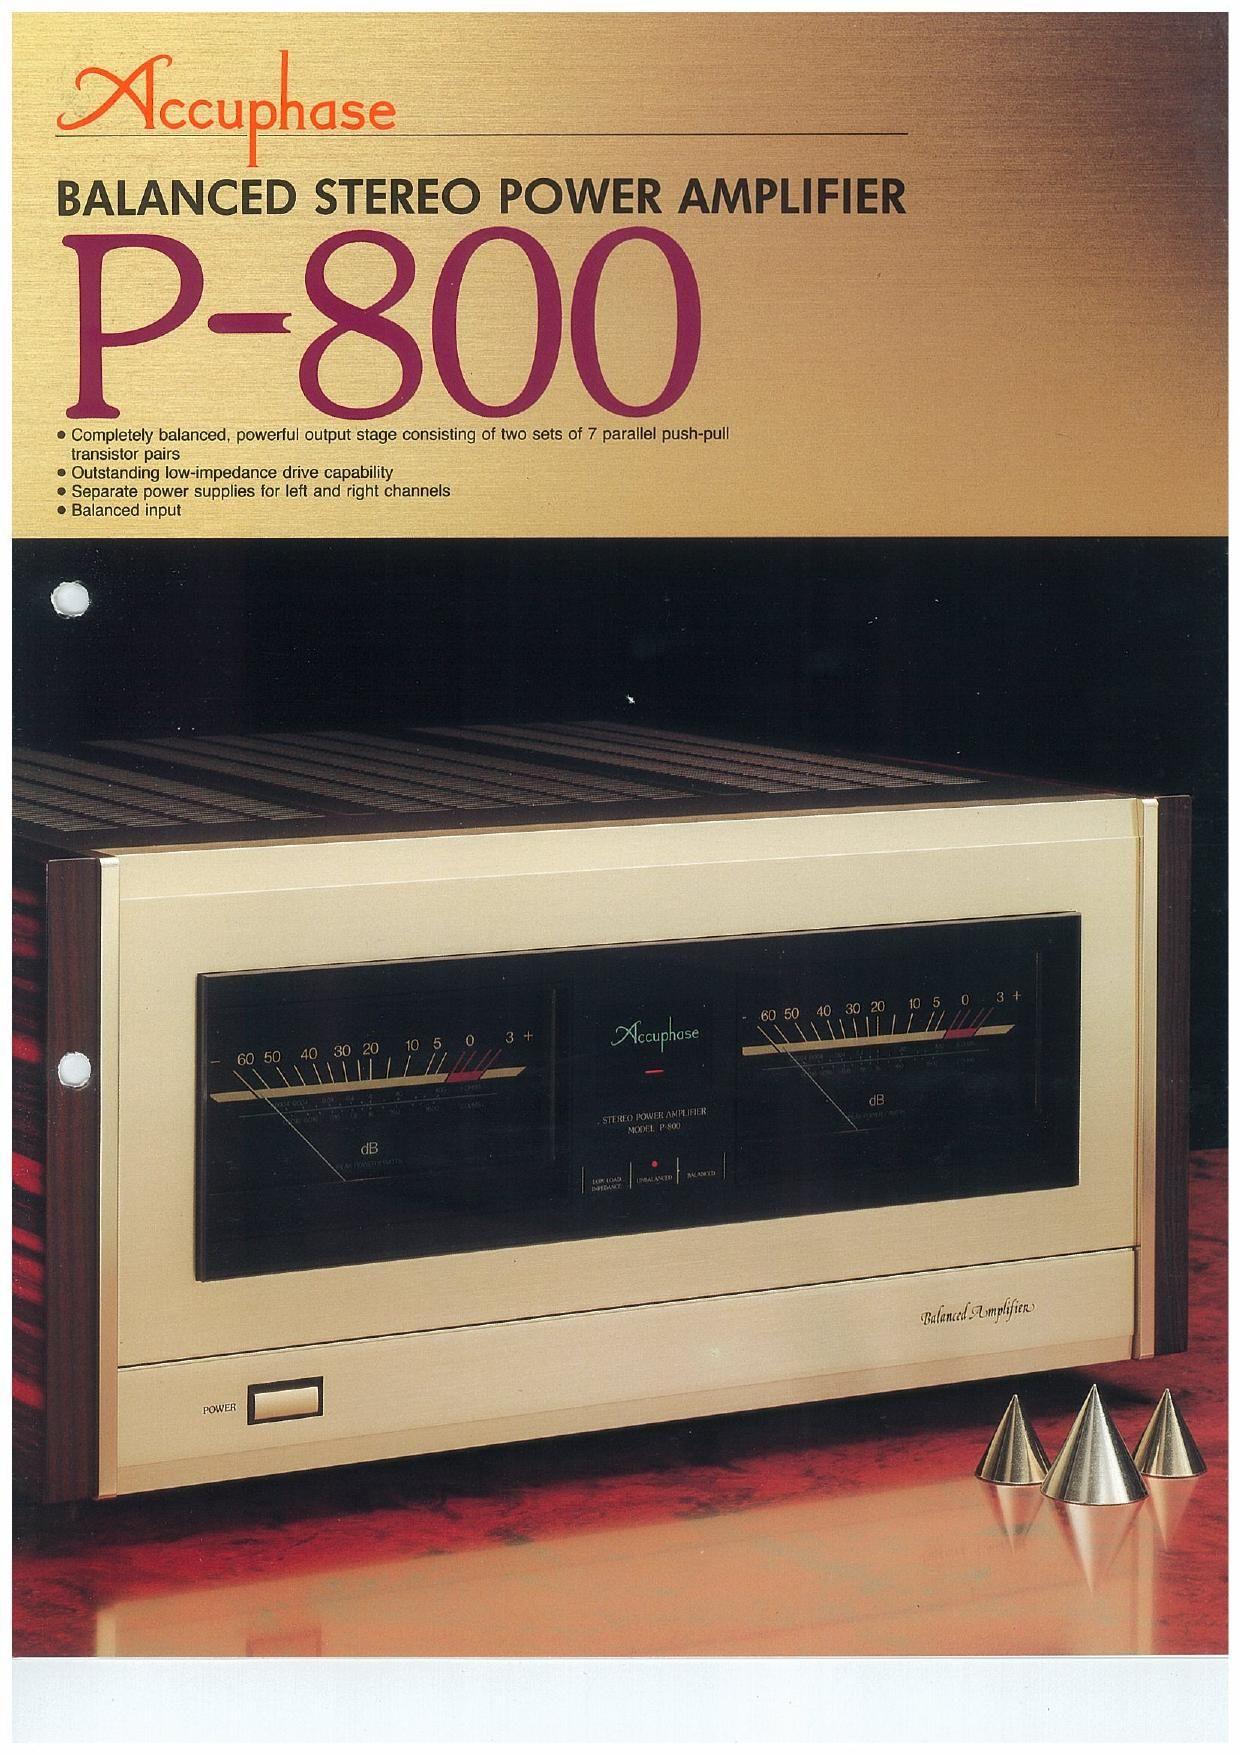 Accuphase P 800 Brochure